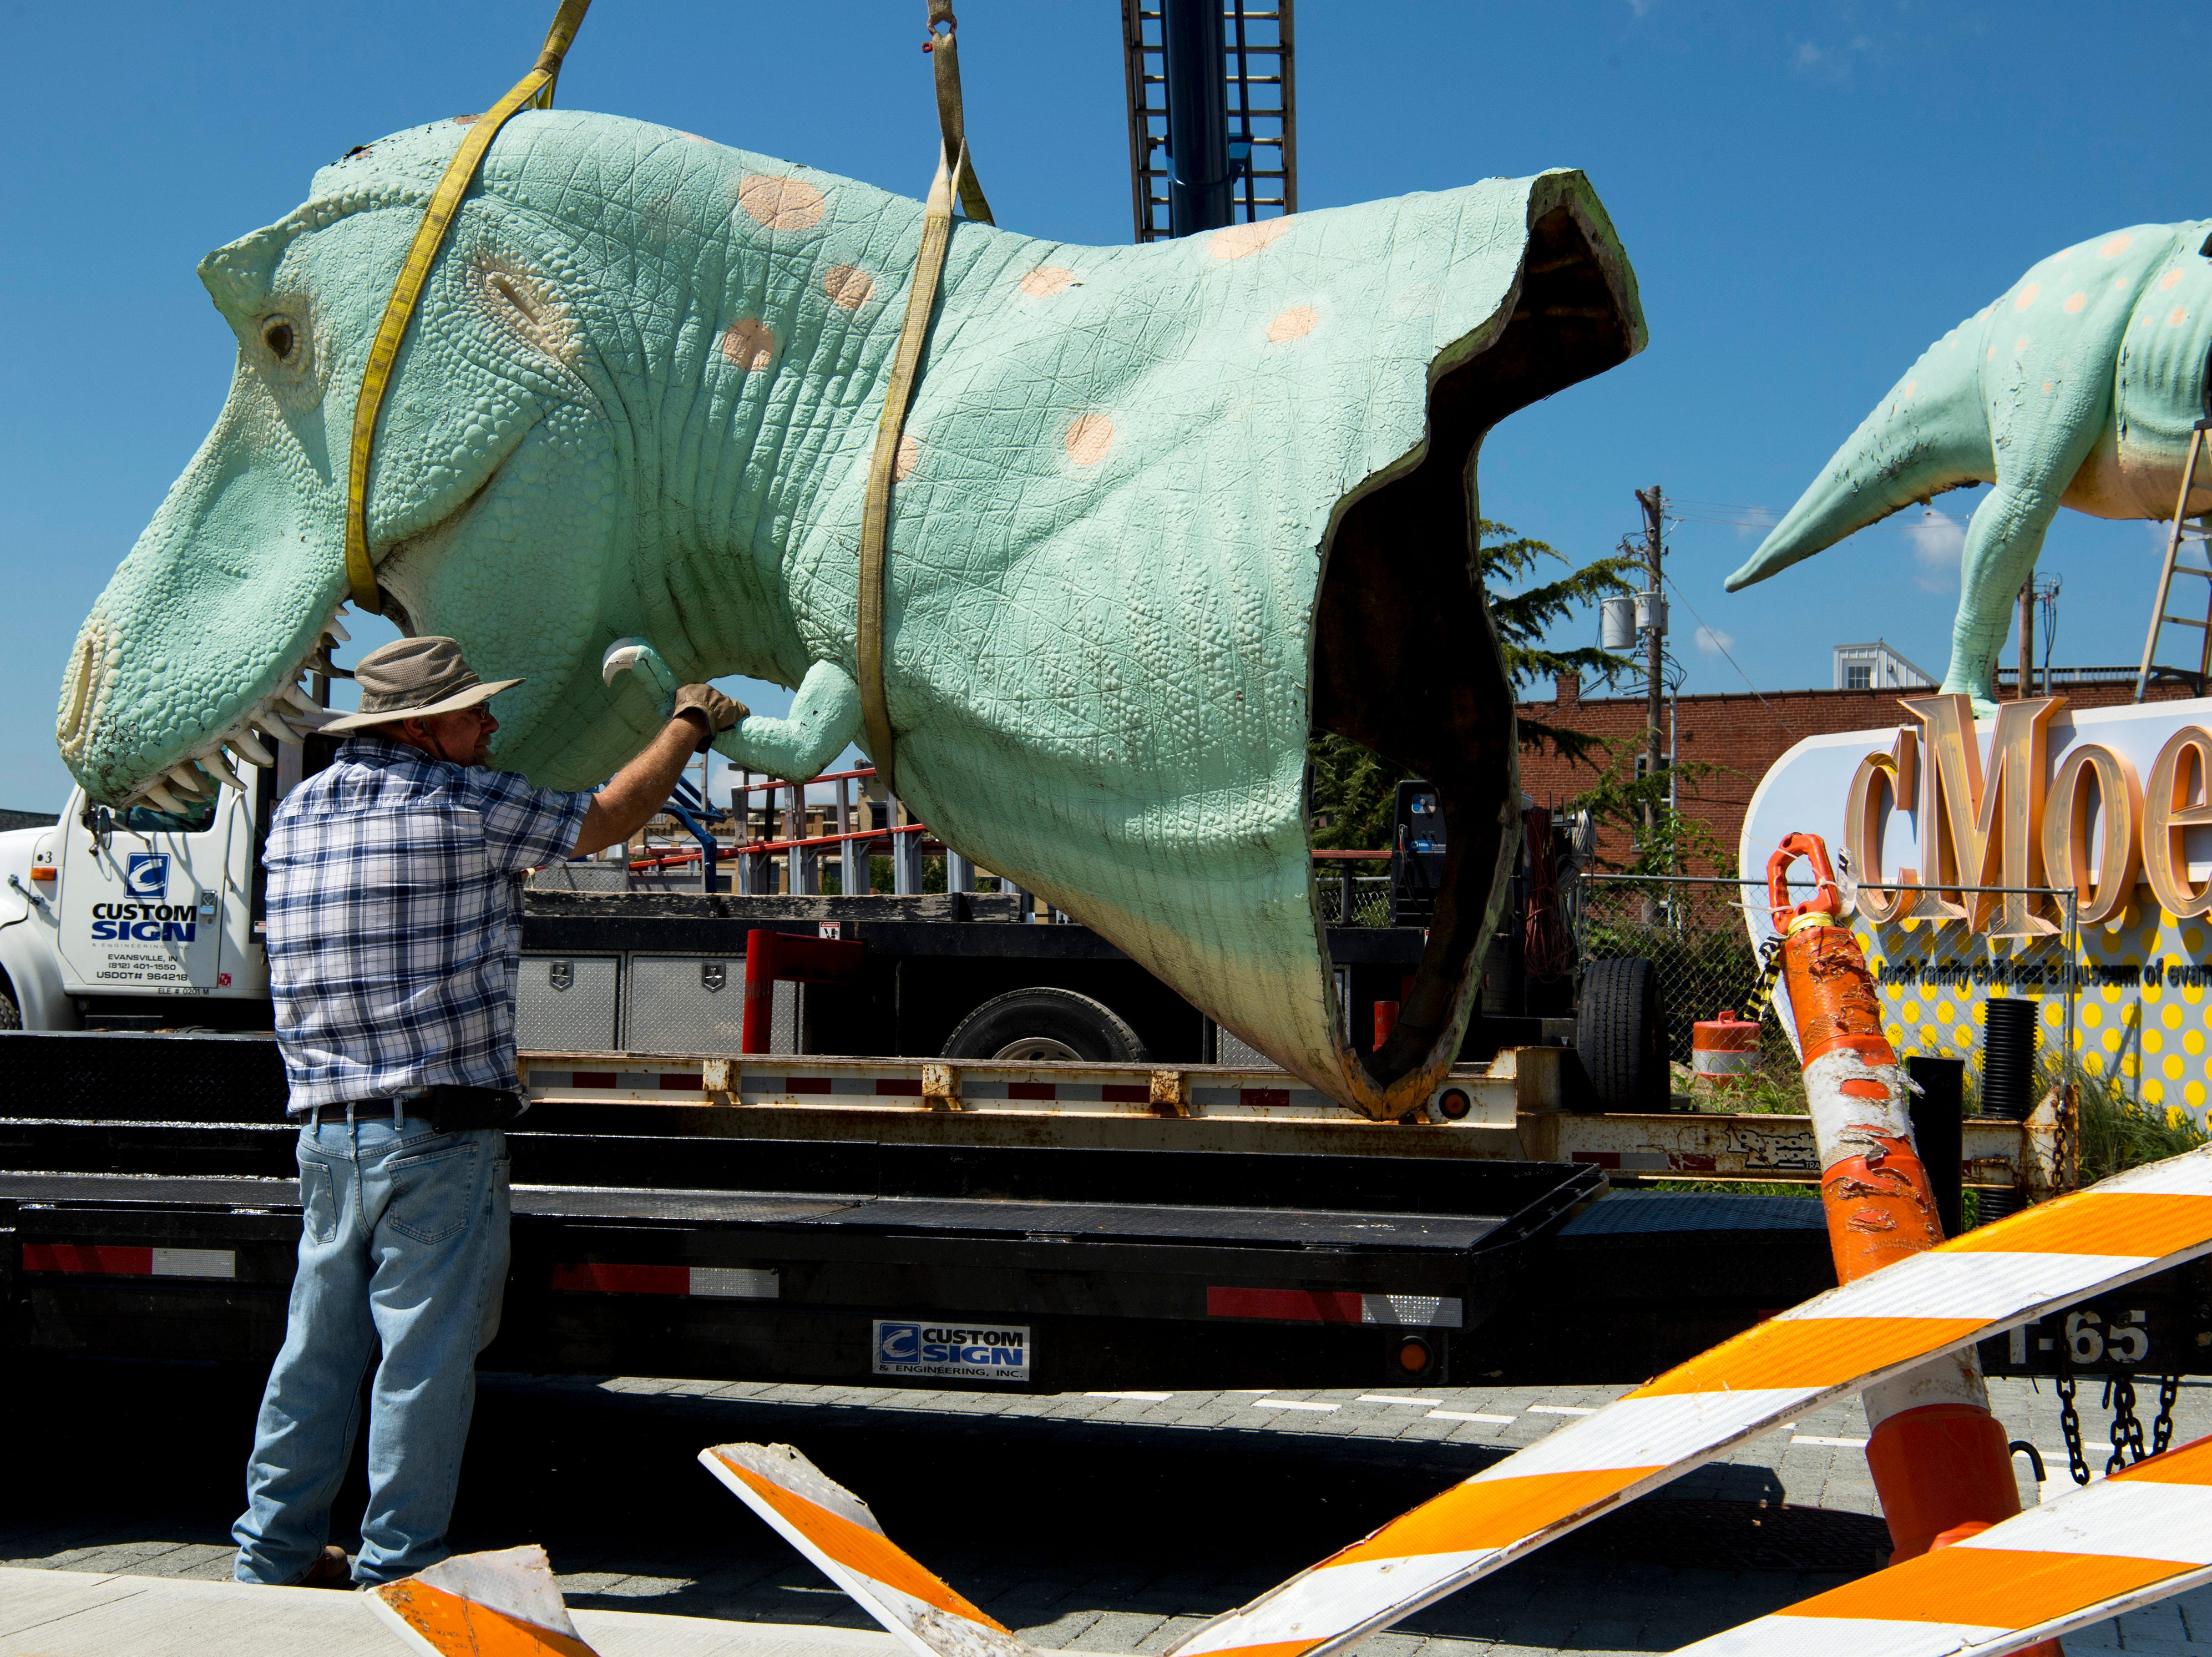 Jay Pipken with Custom Sign of Newburgh, Ind., holds the tiny arm of Millie, a Tyrannosaurus Rex dinosaur – and the Koch Family Children's Museum of Evansville's most recognizable face – as she is placed on a trailer Wednesday morning. Millie has perched atop her pedestal at the corner of Locust and Fifth streets for more than a decade and is getting a new paint job. It is unknown where the green T-Rex will reside after her facelift, but cMoe assures us Millie's new home will be easily seen in the Downtown Evansville area.